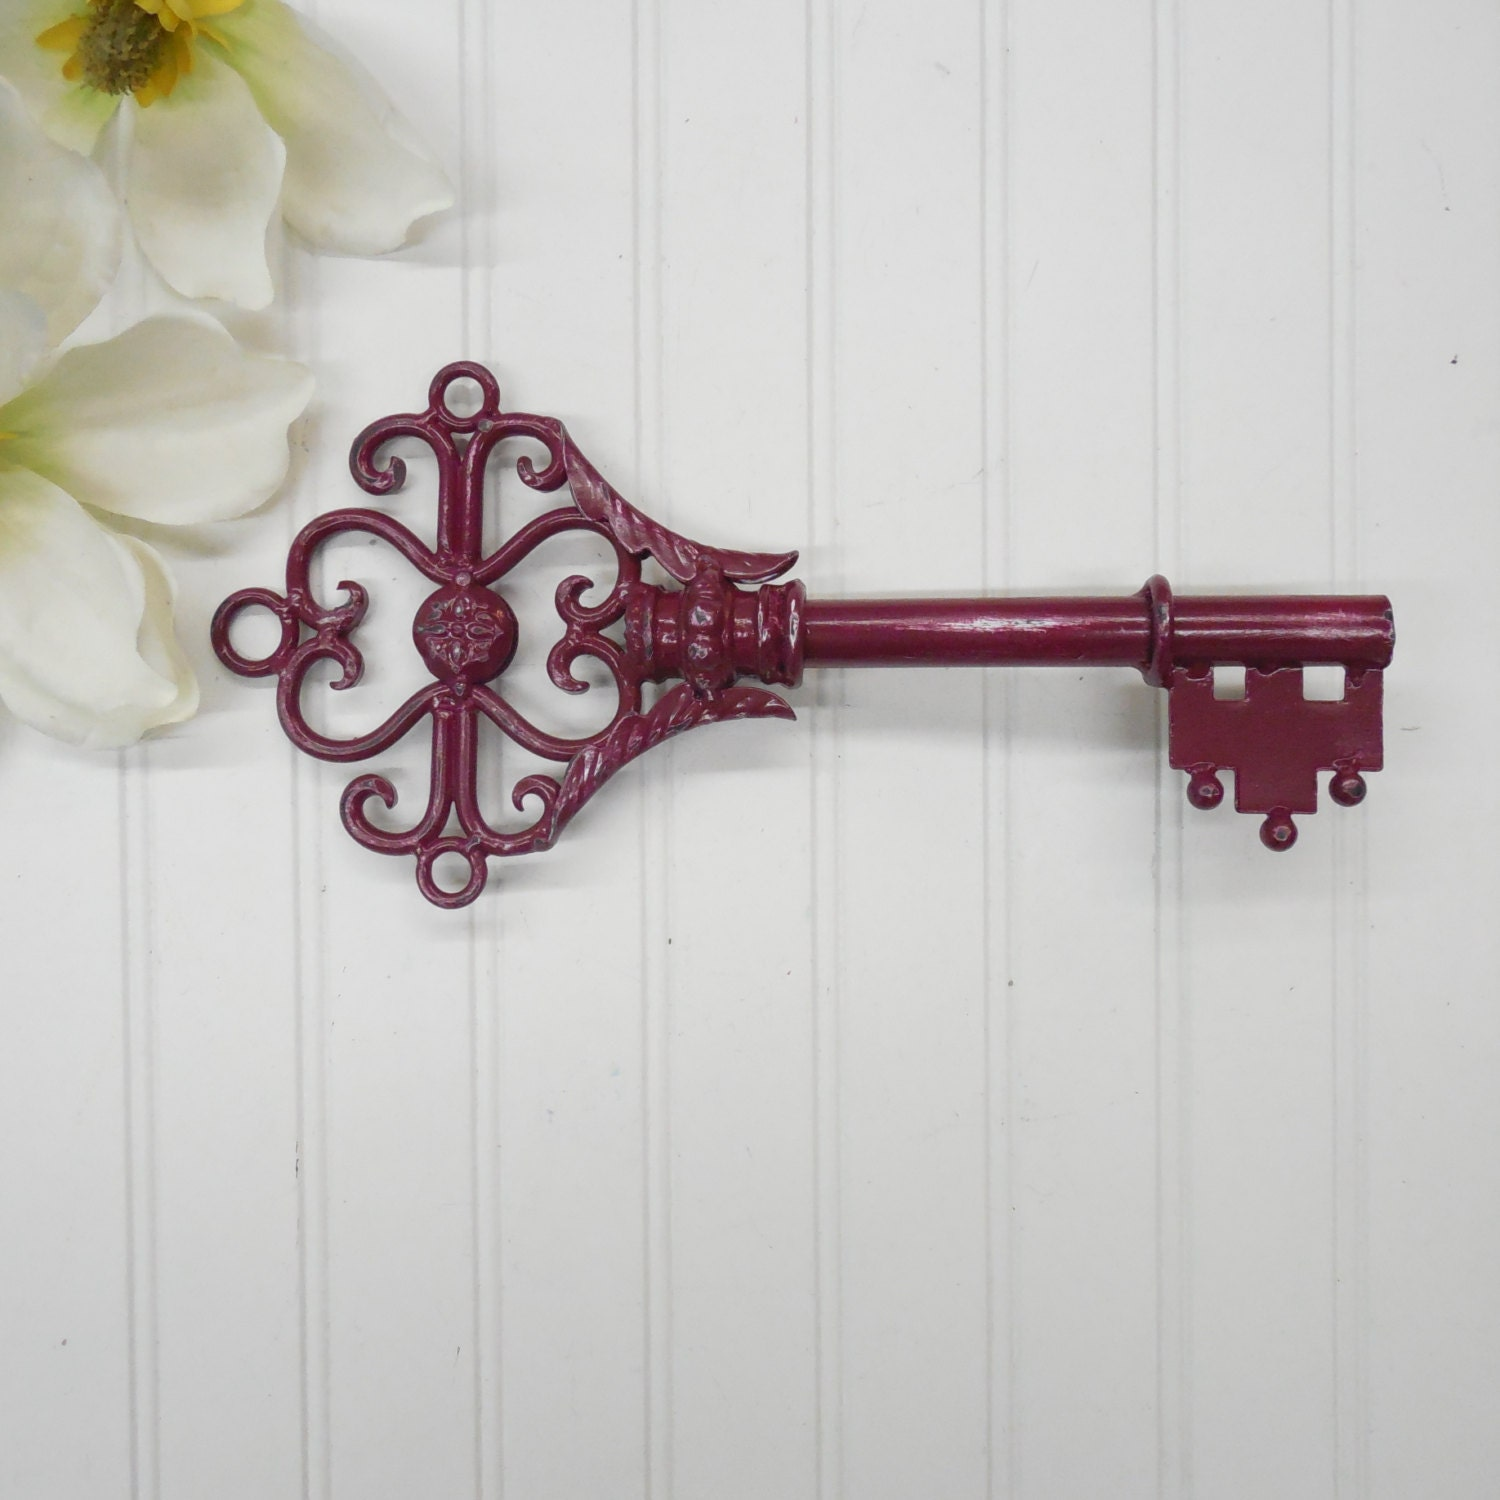 Wall Decor Keys : Wall decor skeleton key keys large metal by